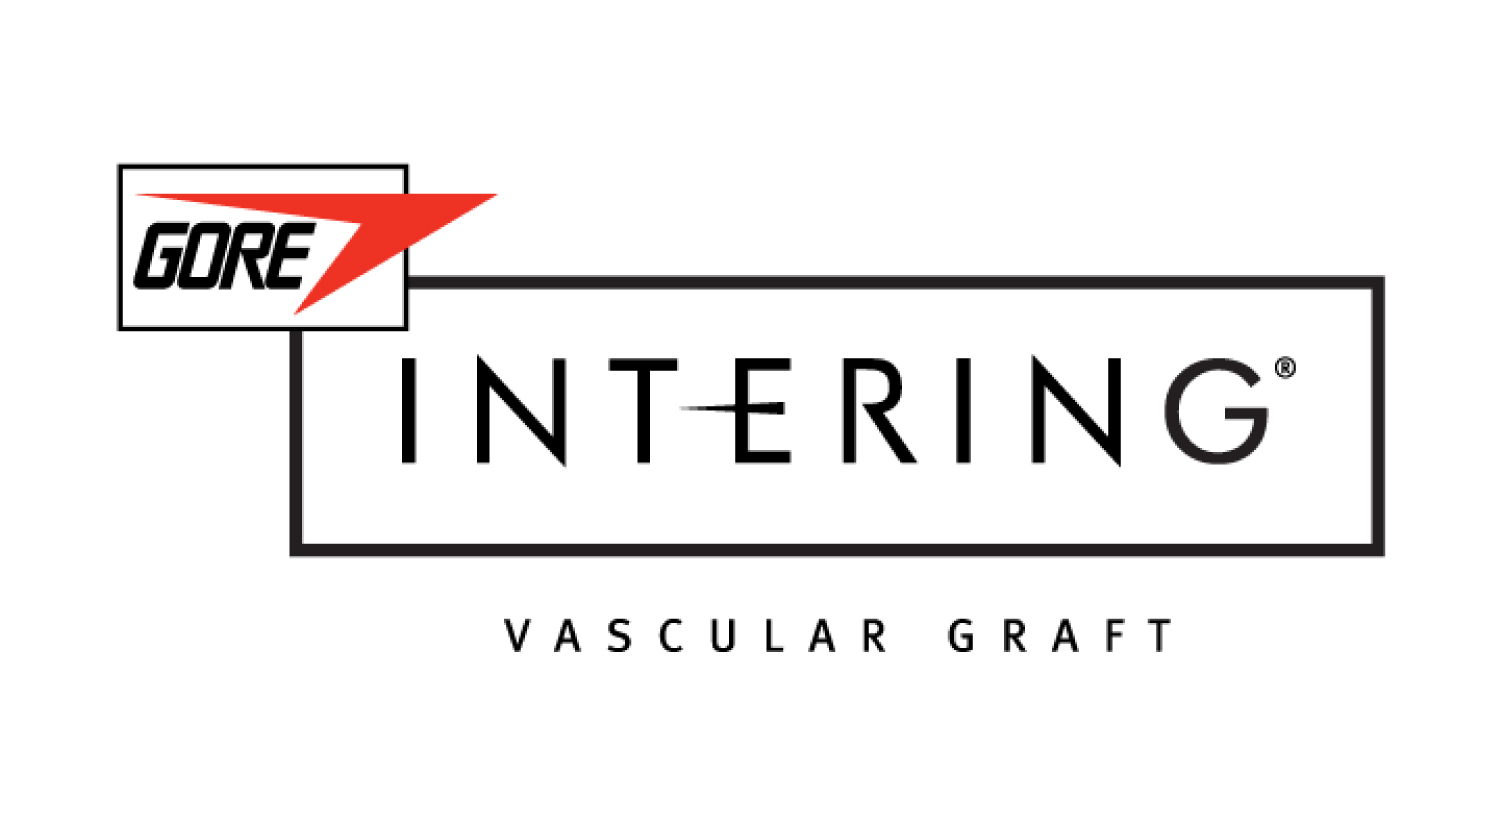 INTERING VASCULAR GRAFT